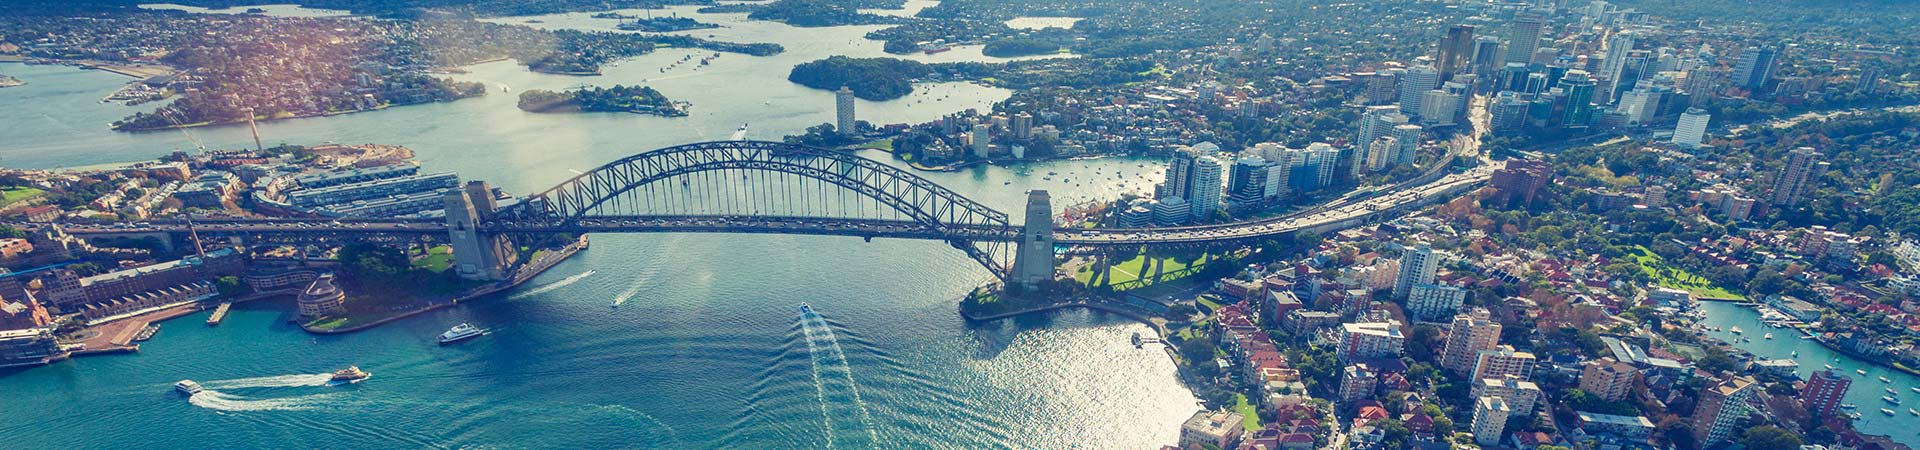 Sydney Property Market - Real Estate Stats | Propertybuyer